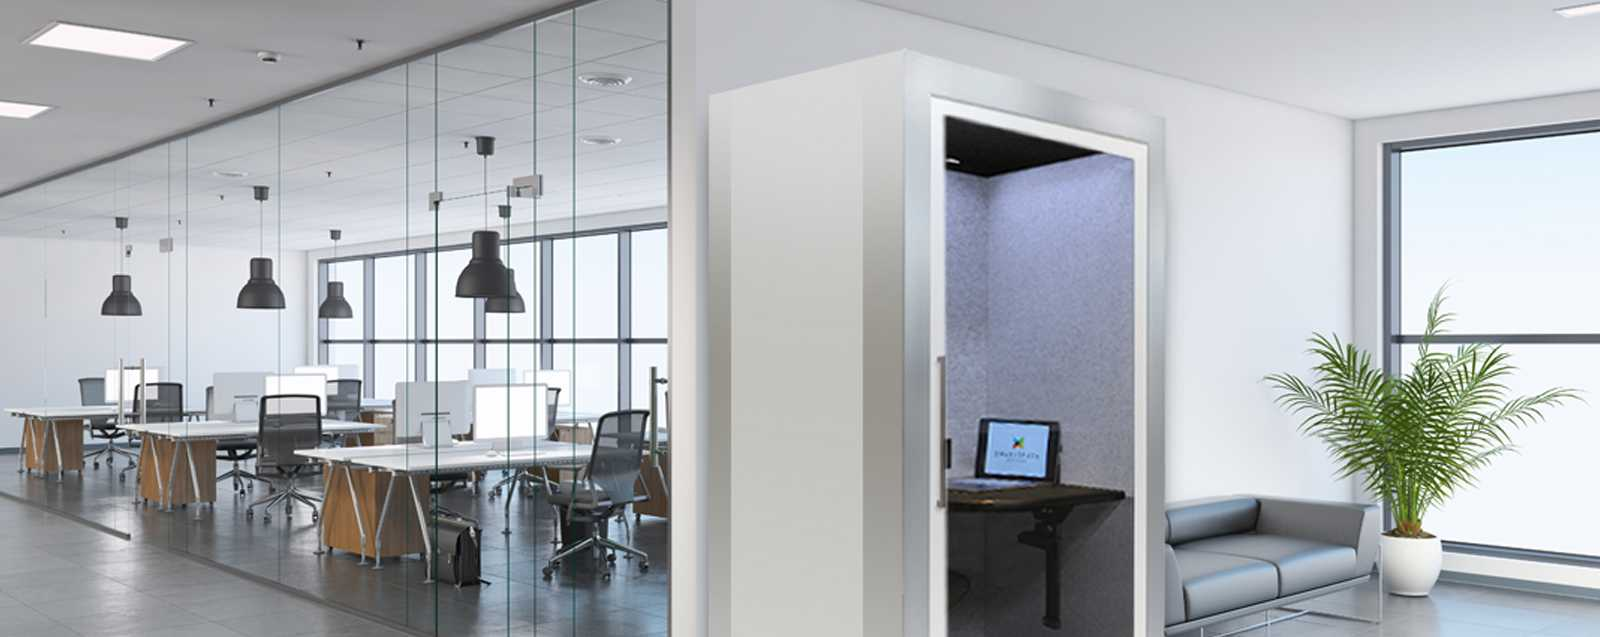 Emagispace Privacy Pod in an open office setting next to a conference room